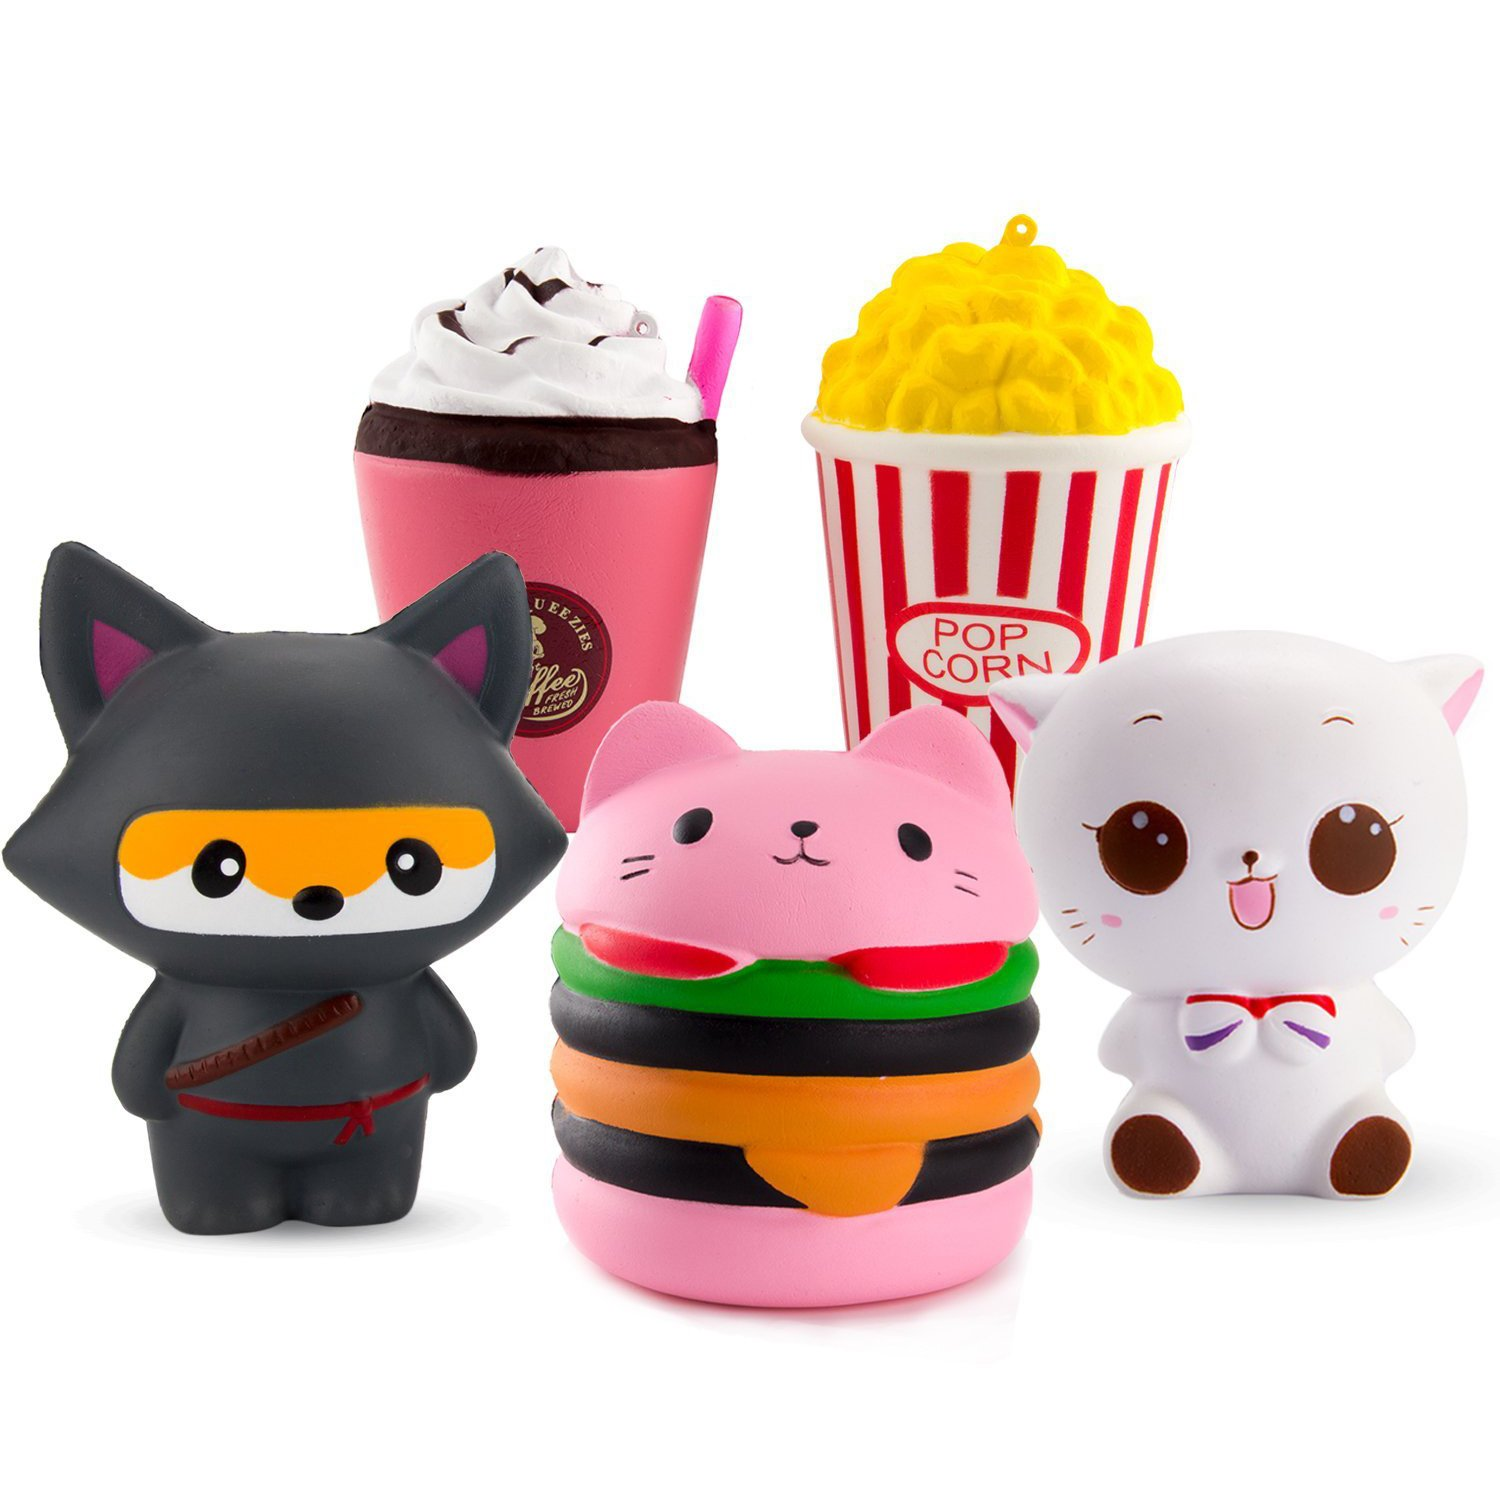 WATINC 5 Pcs Cute Animal&Food Squishy Sweet Scented Vent Charms Slow Rising squishies Kawaii Kid Toy , Lovely Stress Relief Toy, Animals Gift Fun Large(WT-5P Ninja Fox Set)